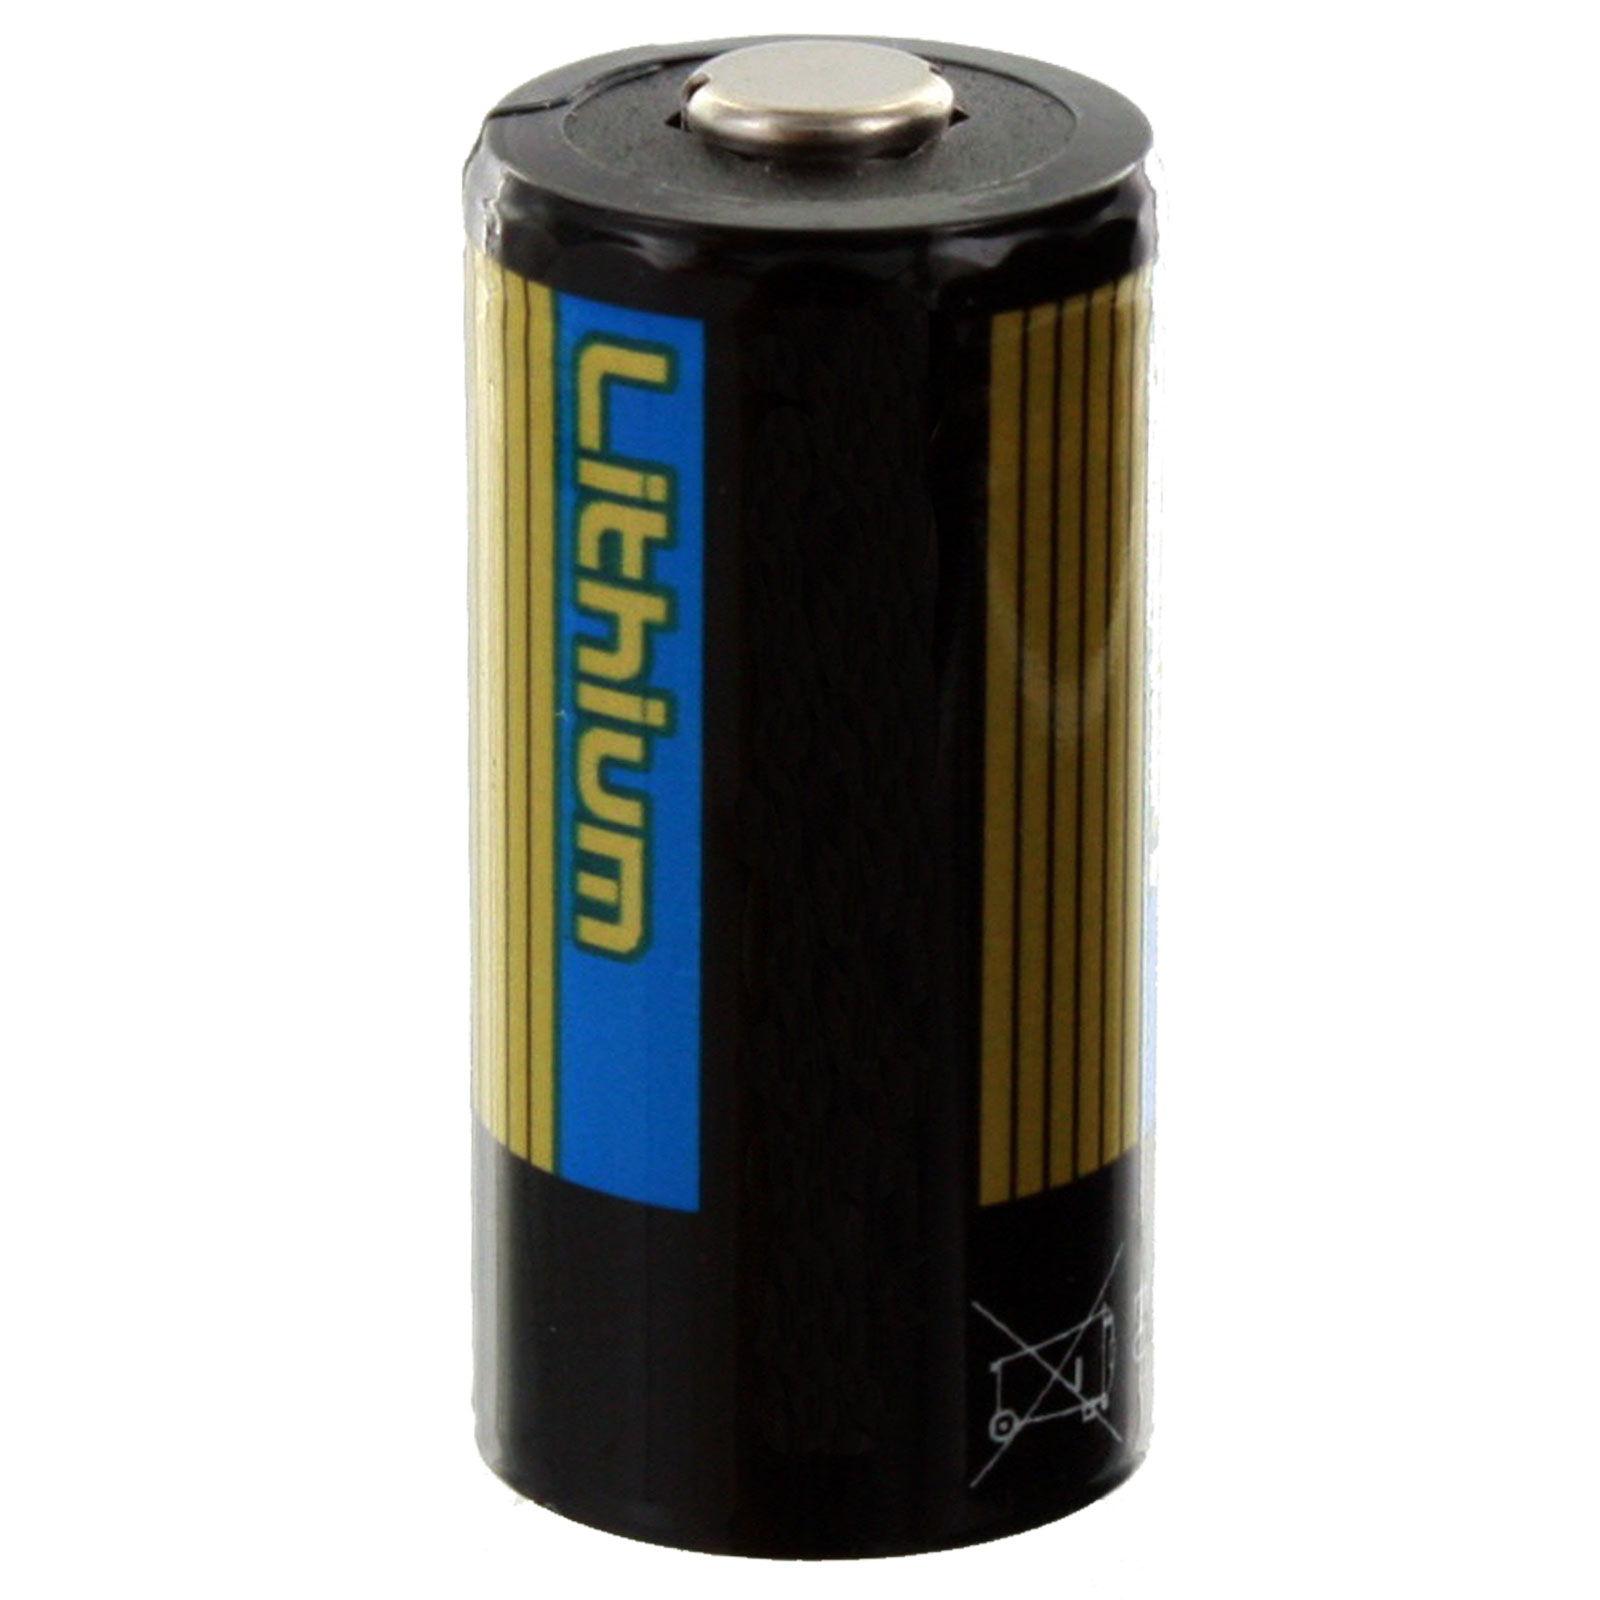 exell battery eb 123 3v cr123 high quality lithium battery fast usa ship ebay. Black Bedroom Furniture Sets. Home Design Ideas